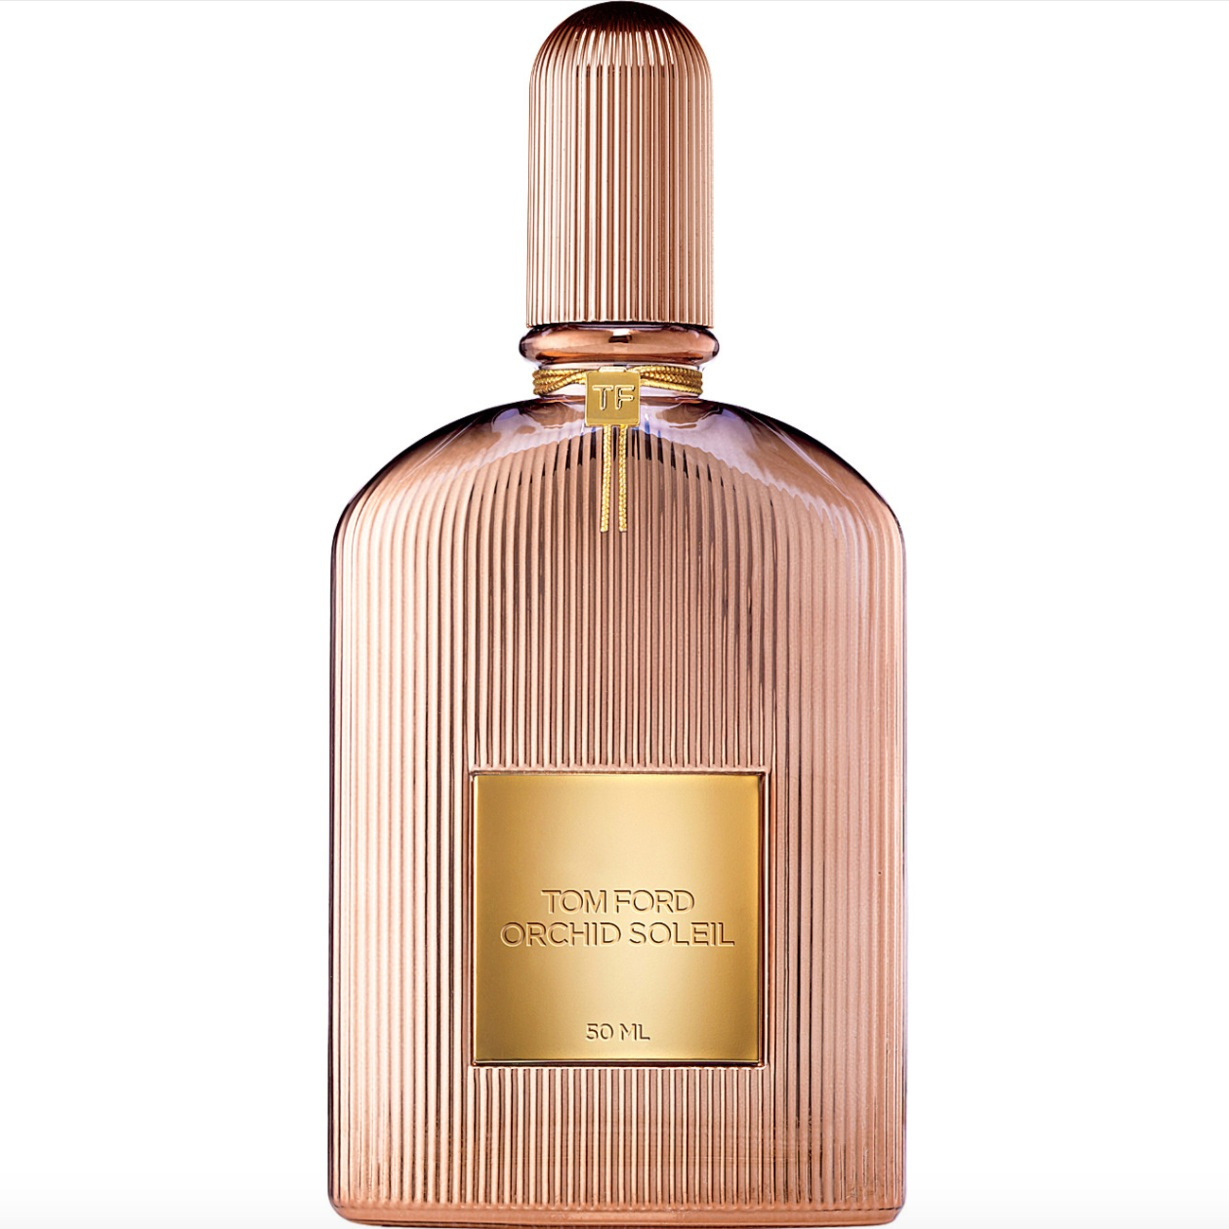 BEAUTY   TOM FORD Orchid soleil eau de parfum 50ml